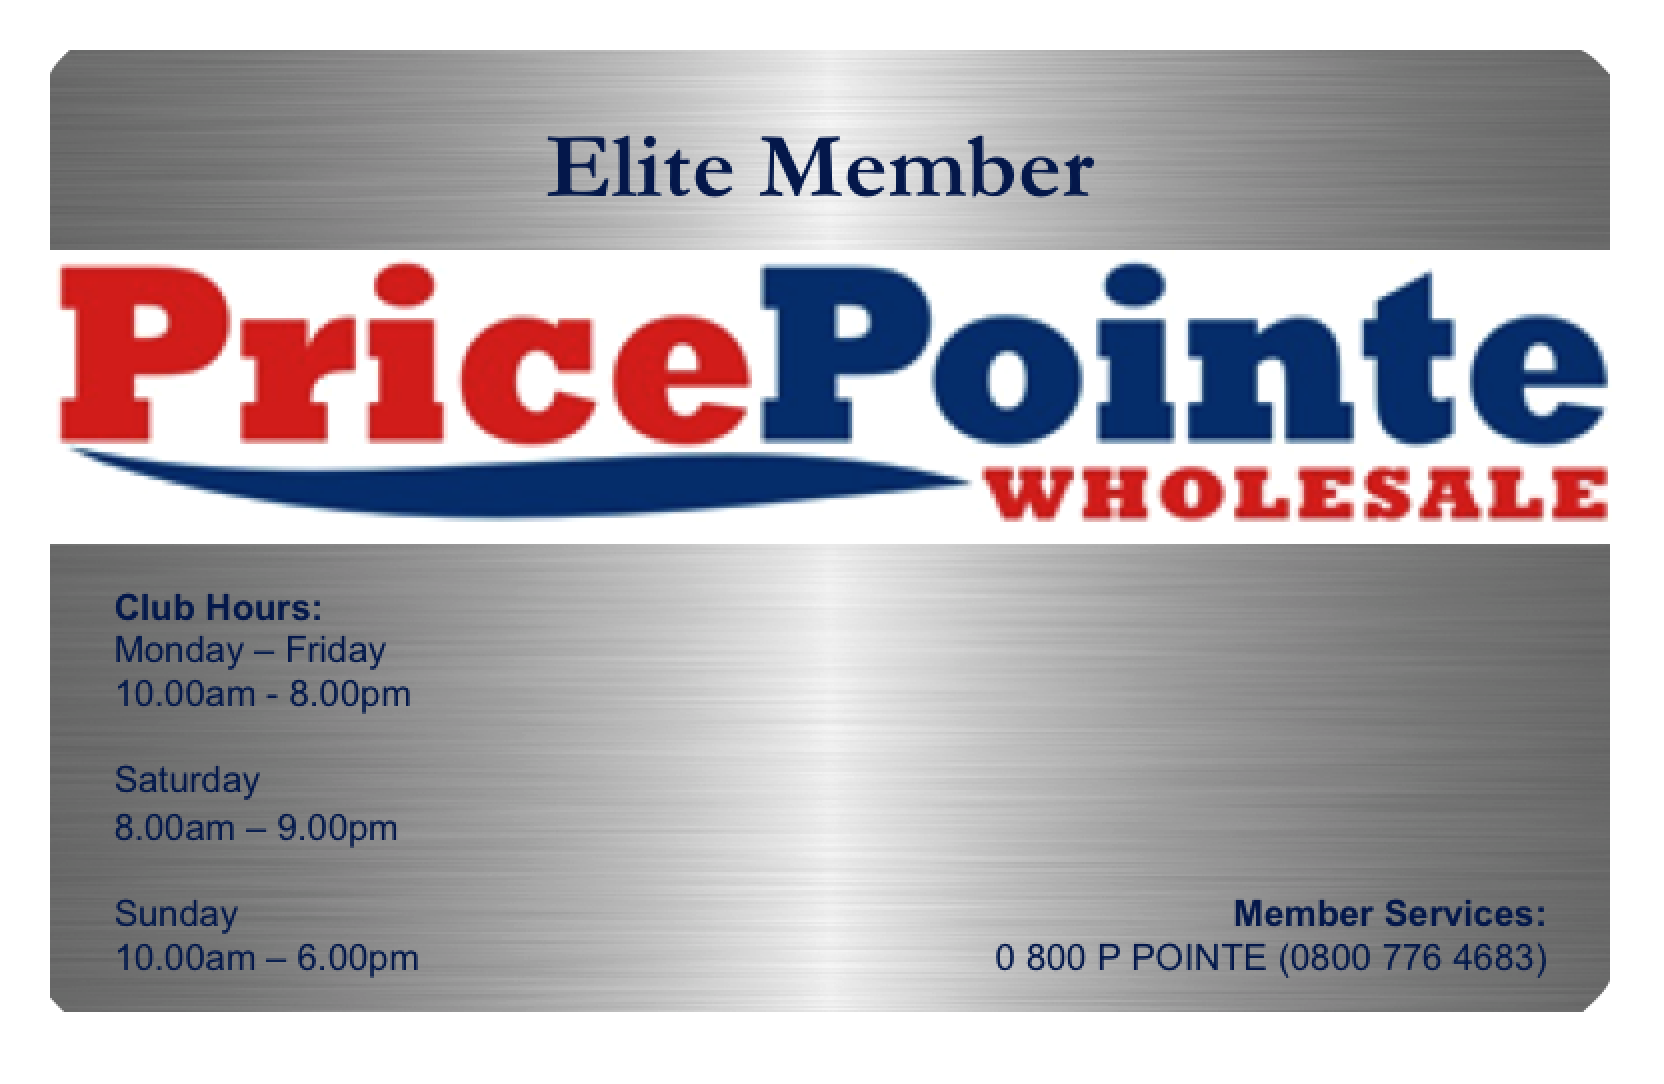 Elite PricePointe Club Membership